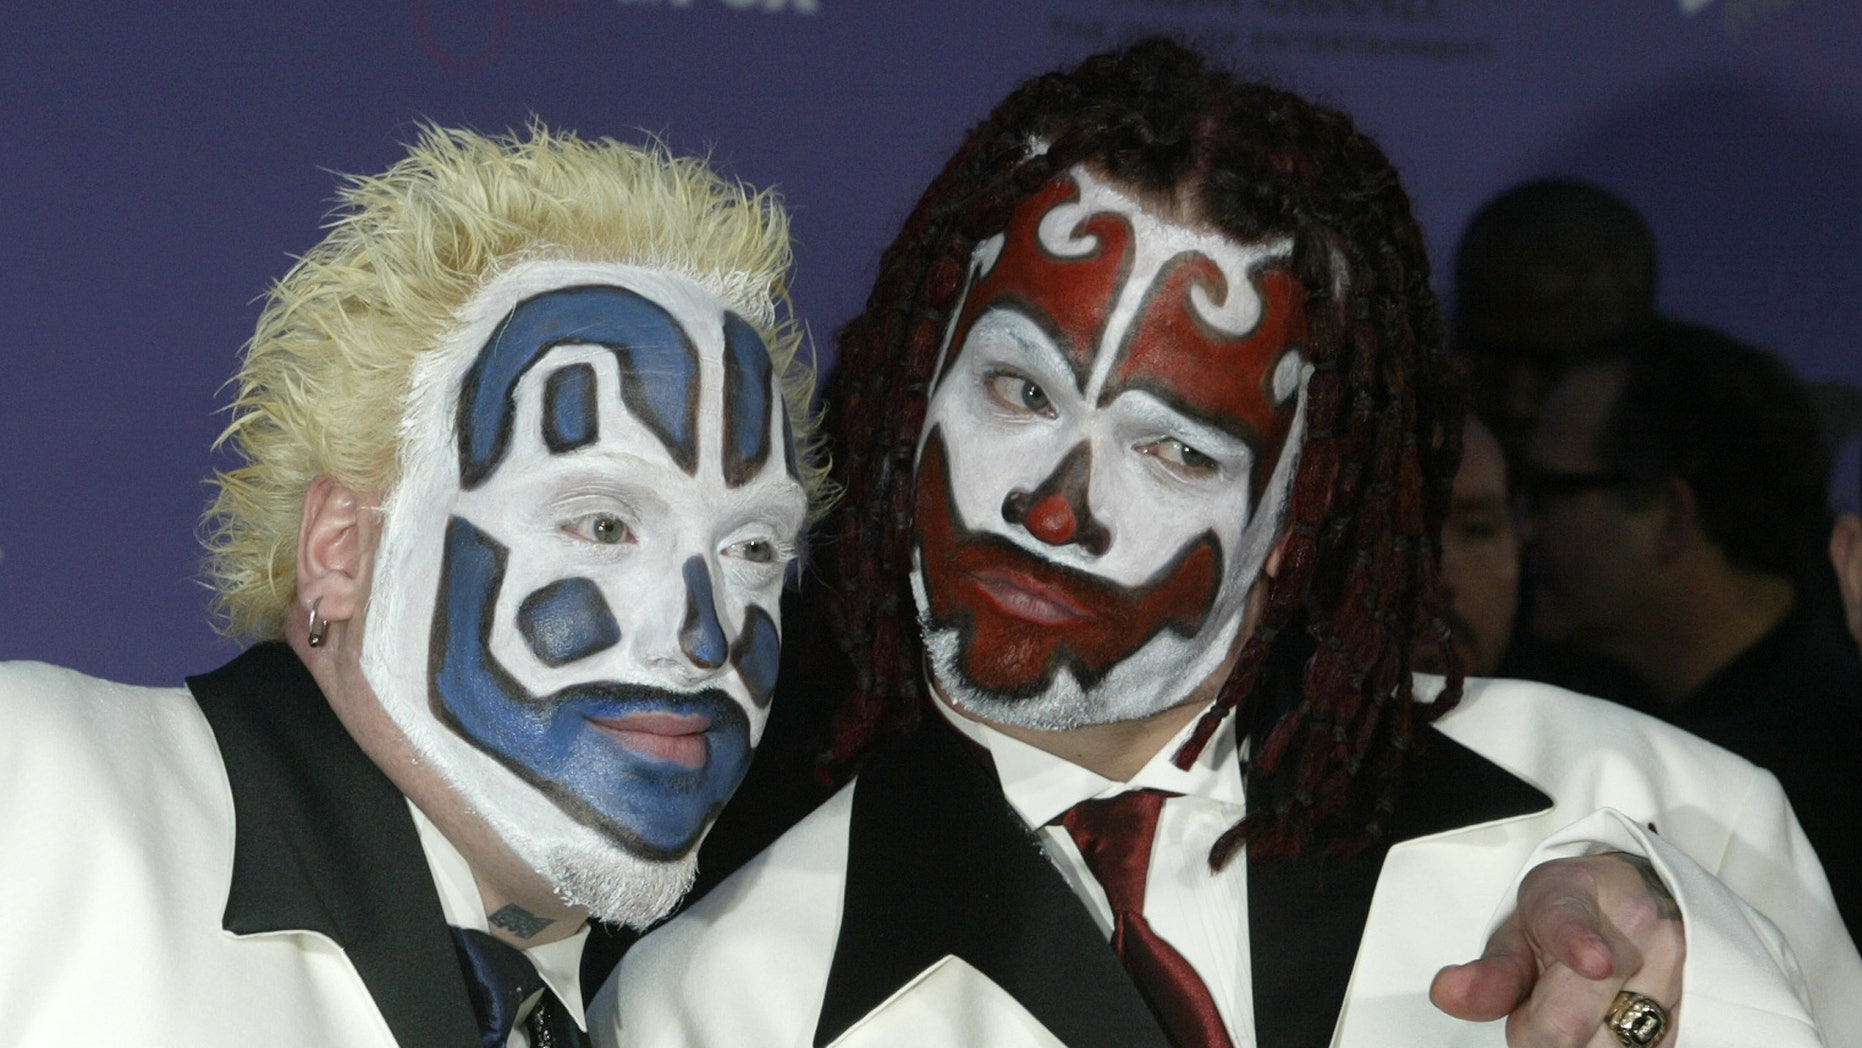 Members of the Insane Clown Posse pose as they arrive at the 2003 Billboard Music Awards at the MGM Grand Garden Arena in Las Vegas, Nevada, Dec. 10, 2003.